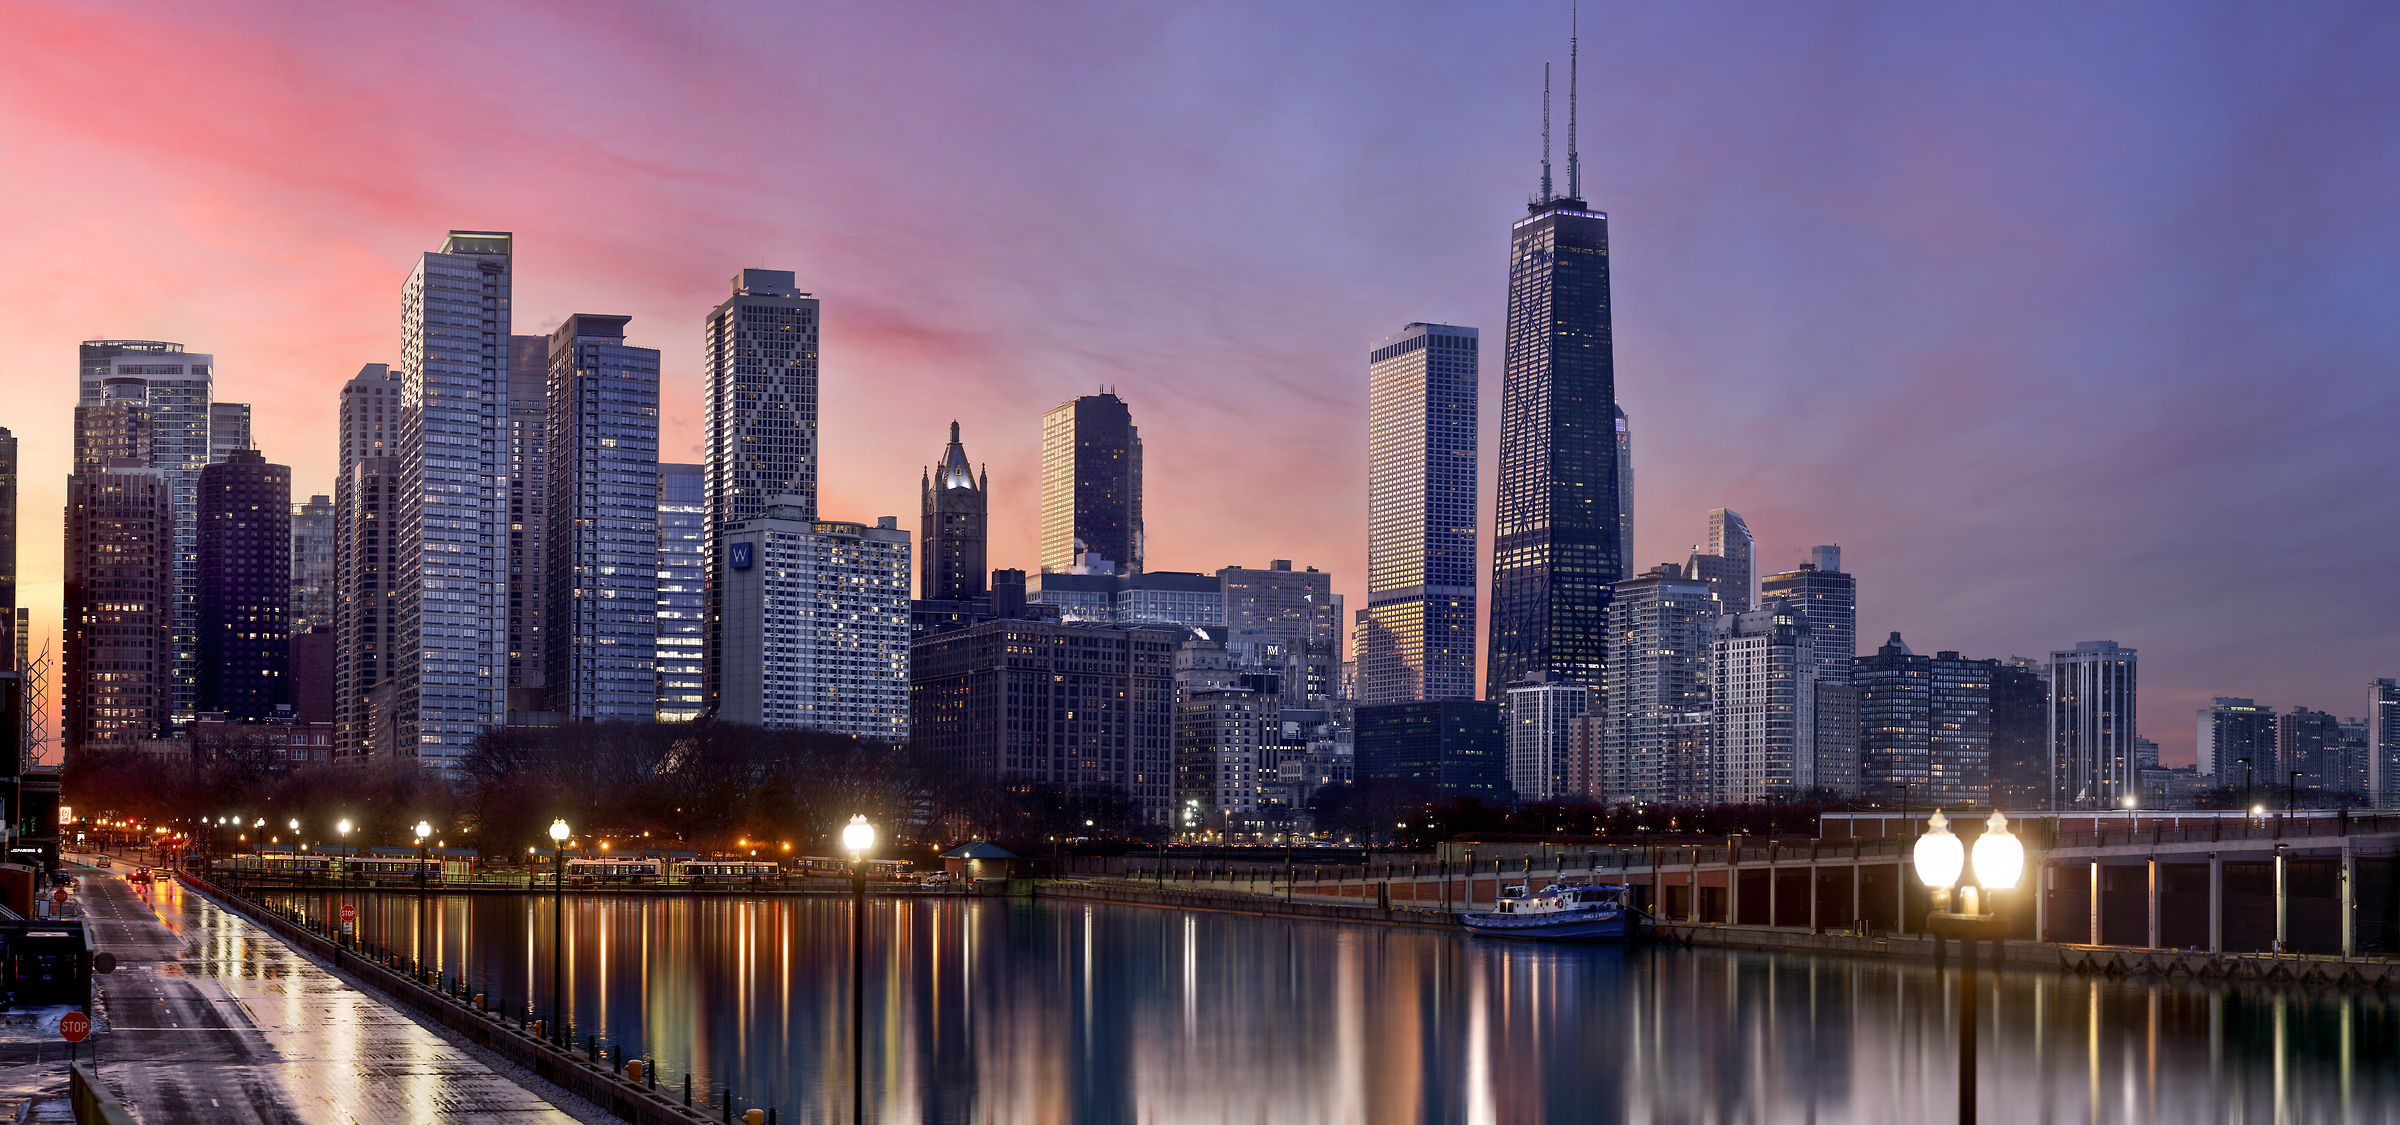 381 megapixels! A very high resolution, large-format VAST photo print of the Chicago skyline at sunset; cityscape photograph created by Phil Crawshay in Chicago, Illinois